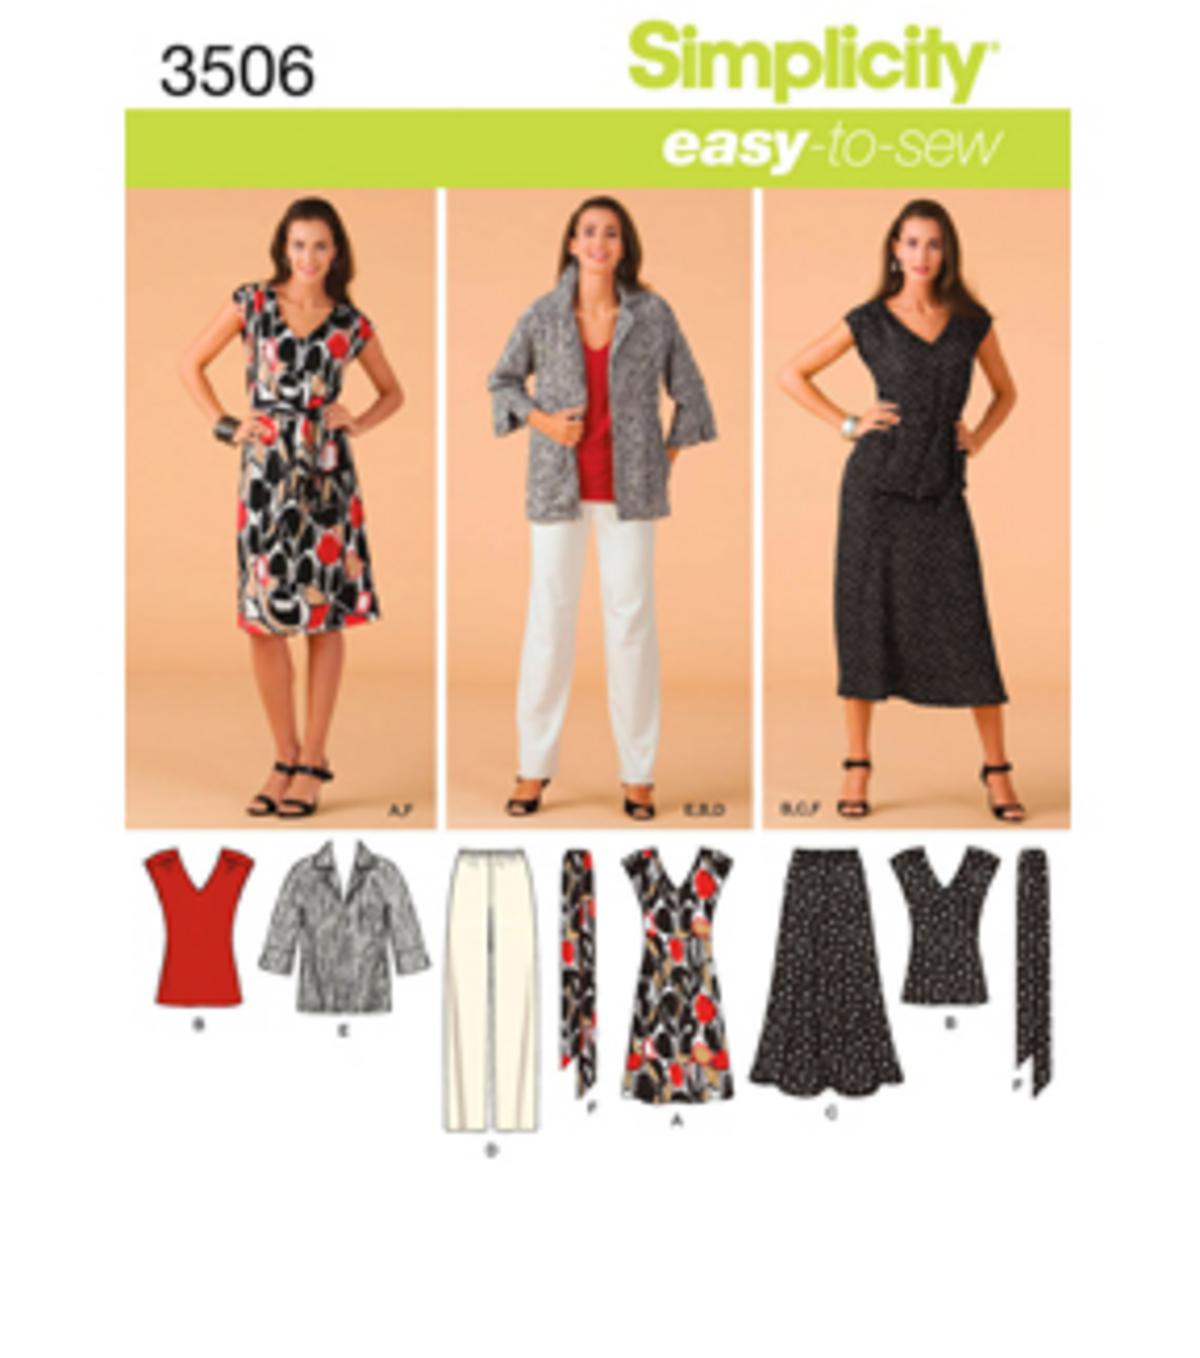 Simplicity Pattern 3506AA 10 12 14 1-Simplicity Misses